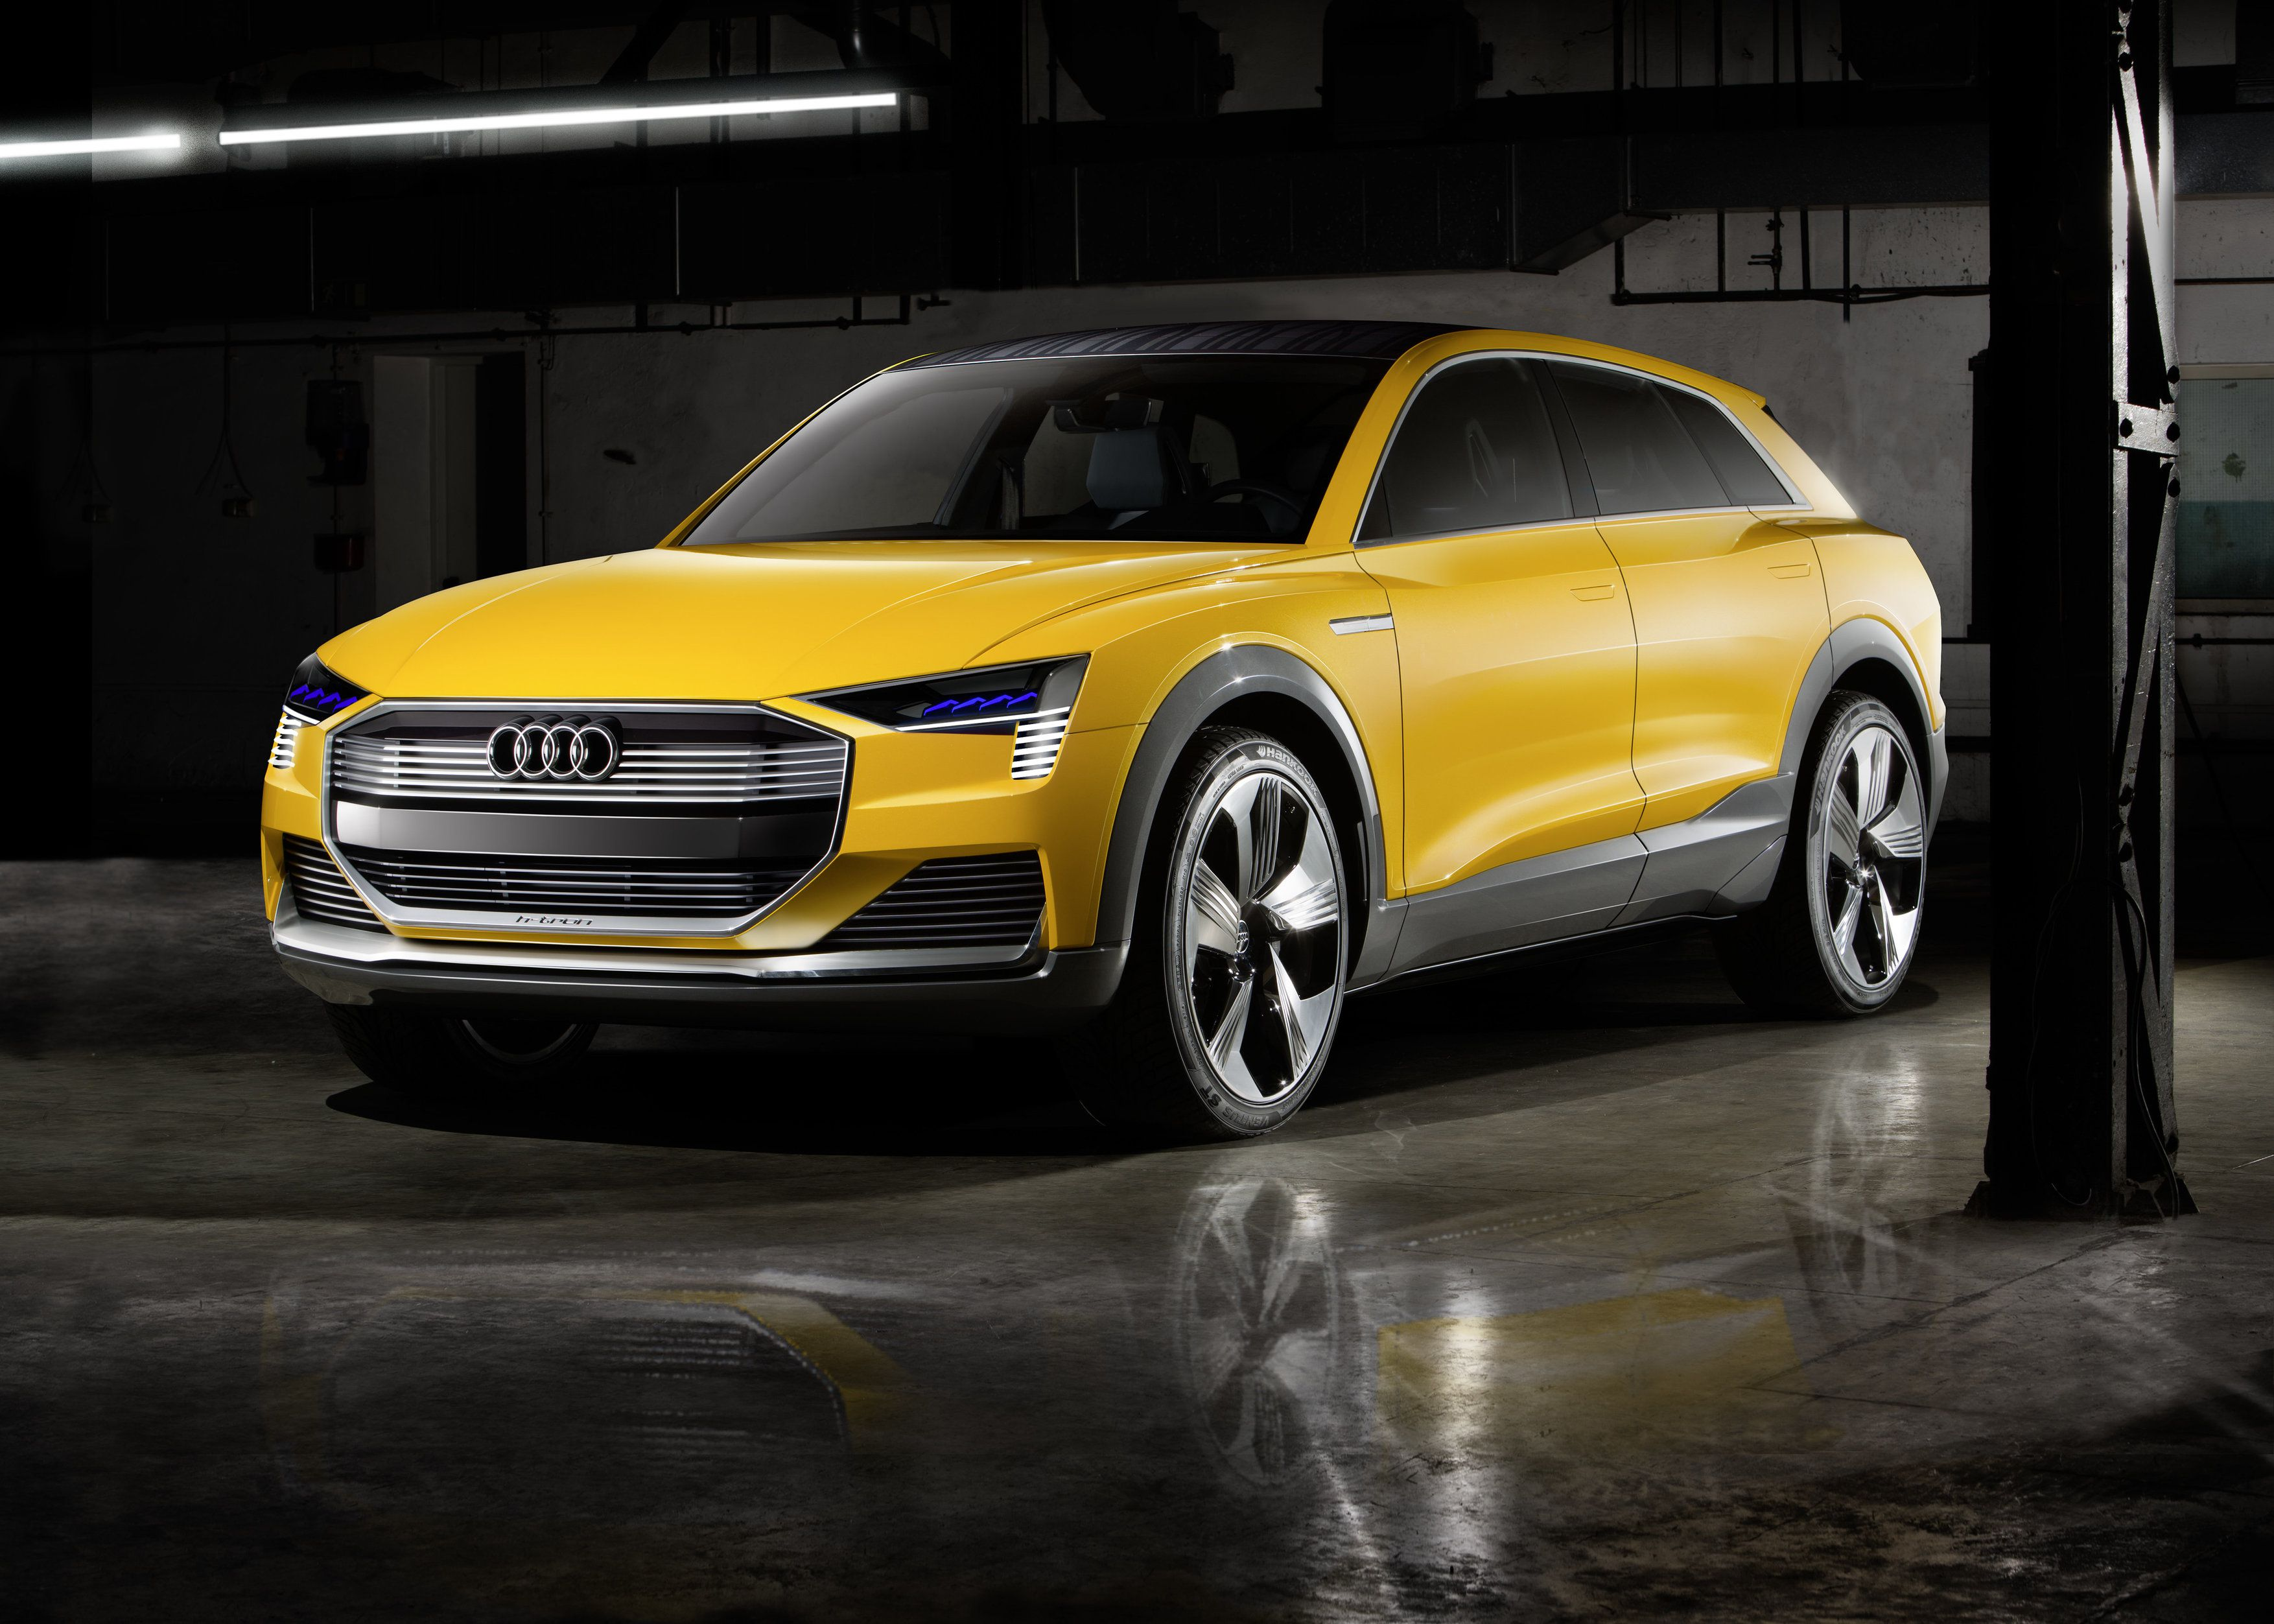 Usa audi not only has the all new a4 sedan and allroad on show but a new concept too at the n a i a s